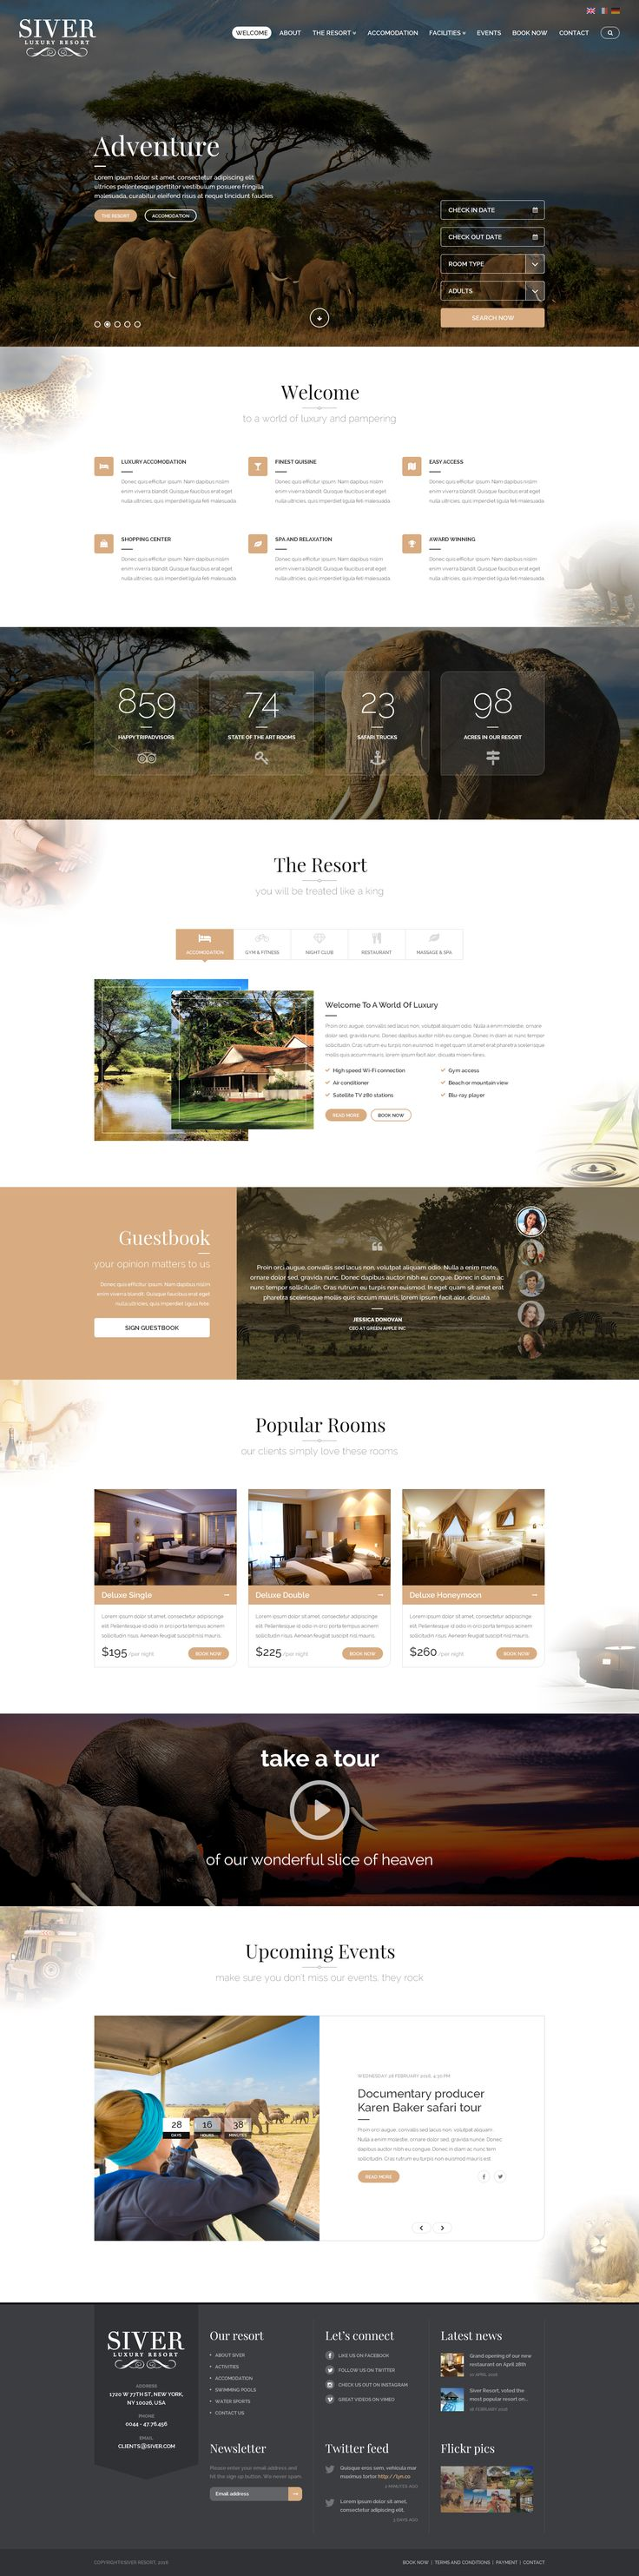 Siver Luxury Resort PSD Template 1409